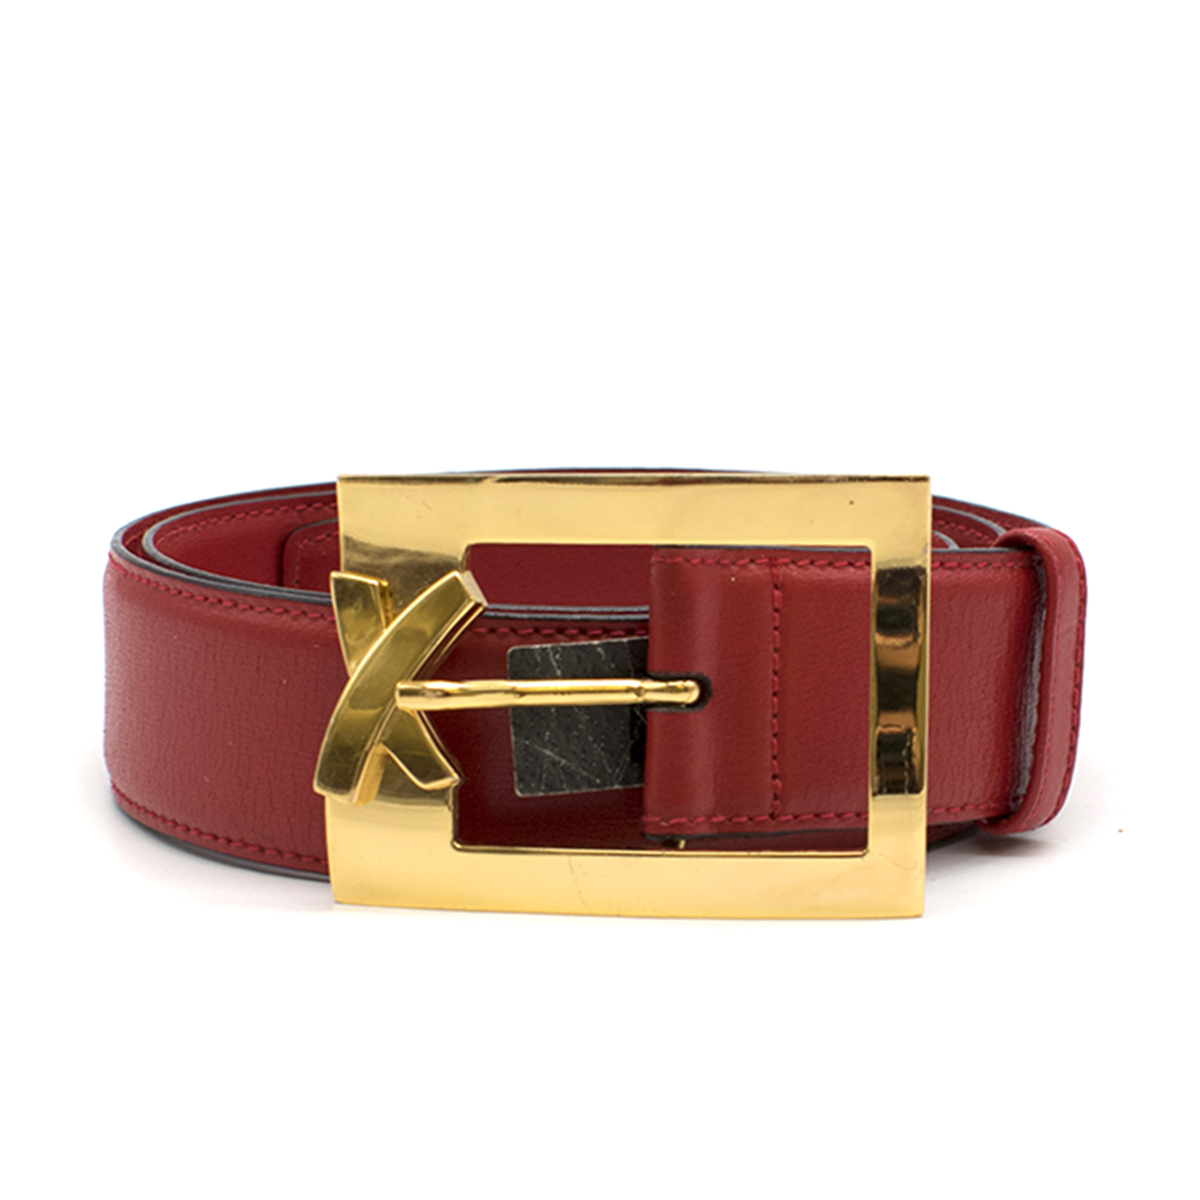 Paloma Picasso Red Leather Belt